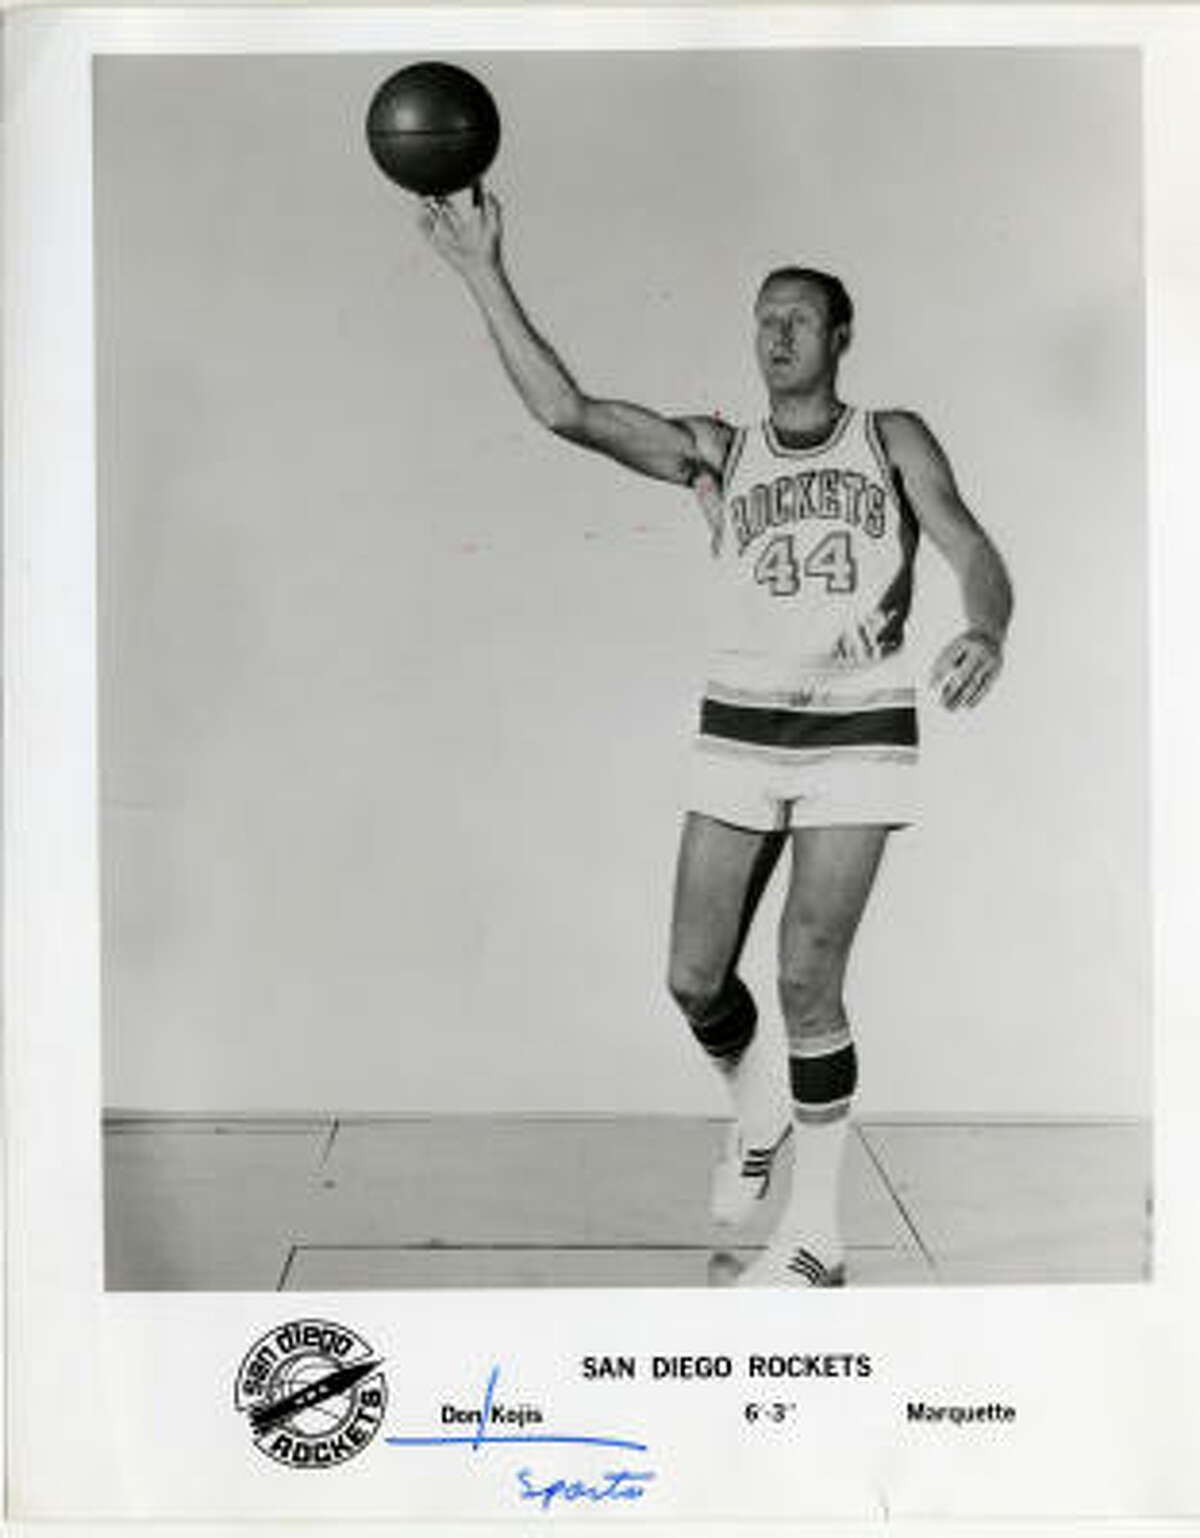 Out west From 1968 until 1971 the franchise was based in San Diego and named after the rockets that were helping send men into space, some of which were made in San Diego. They were just the 12th franchise in the NBA.